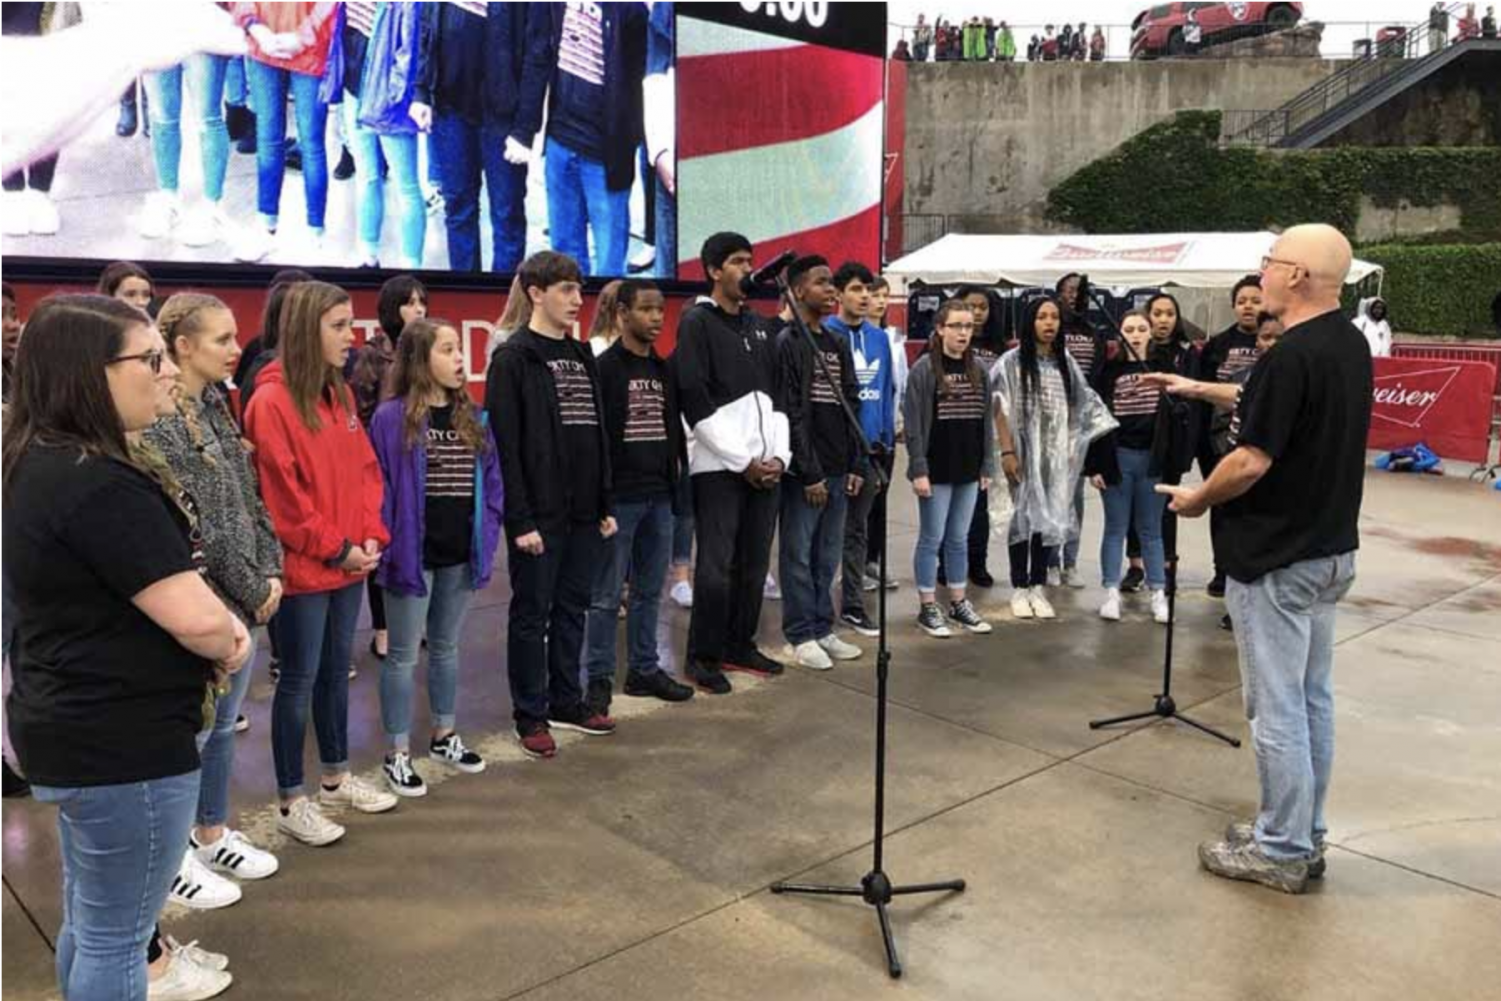 In 2018, the choir made their first appearance at a professional sporting event, singing the national anthem at FC Dallas. This year, the choir will be heading to the Comercia Center to sing the anthem before a Texas Legends basketball game.